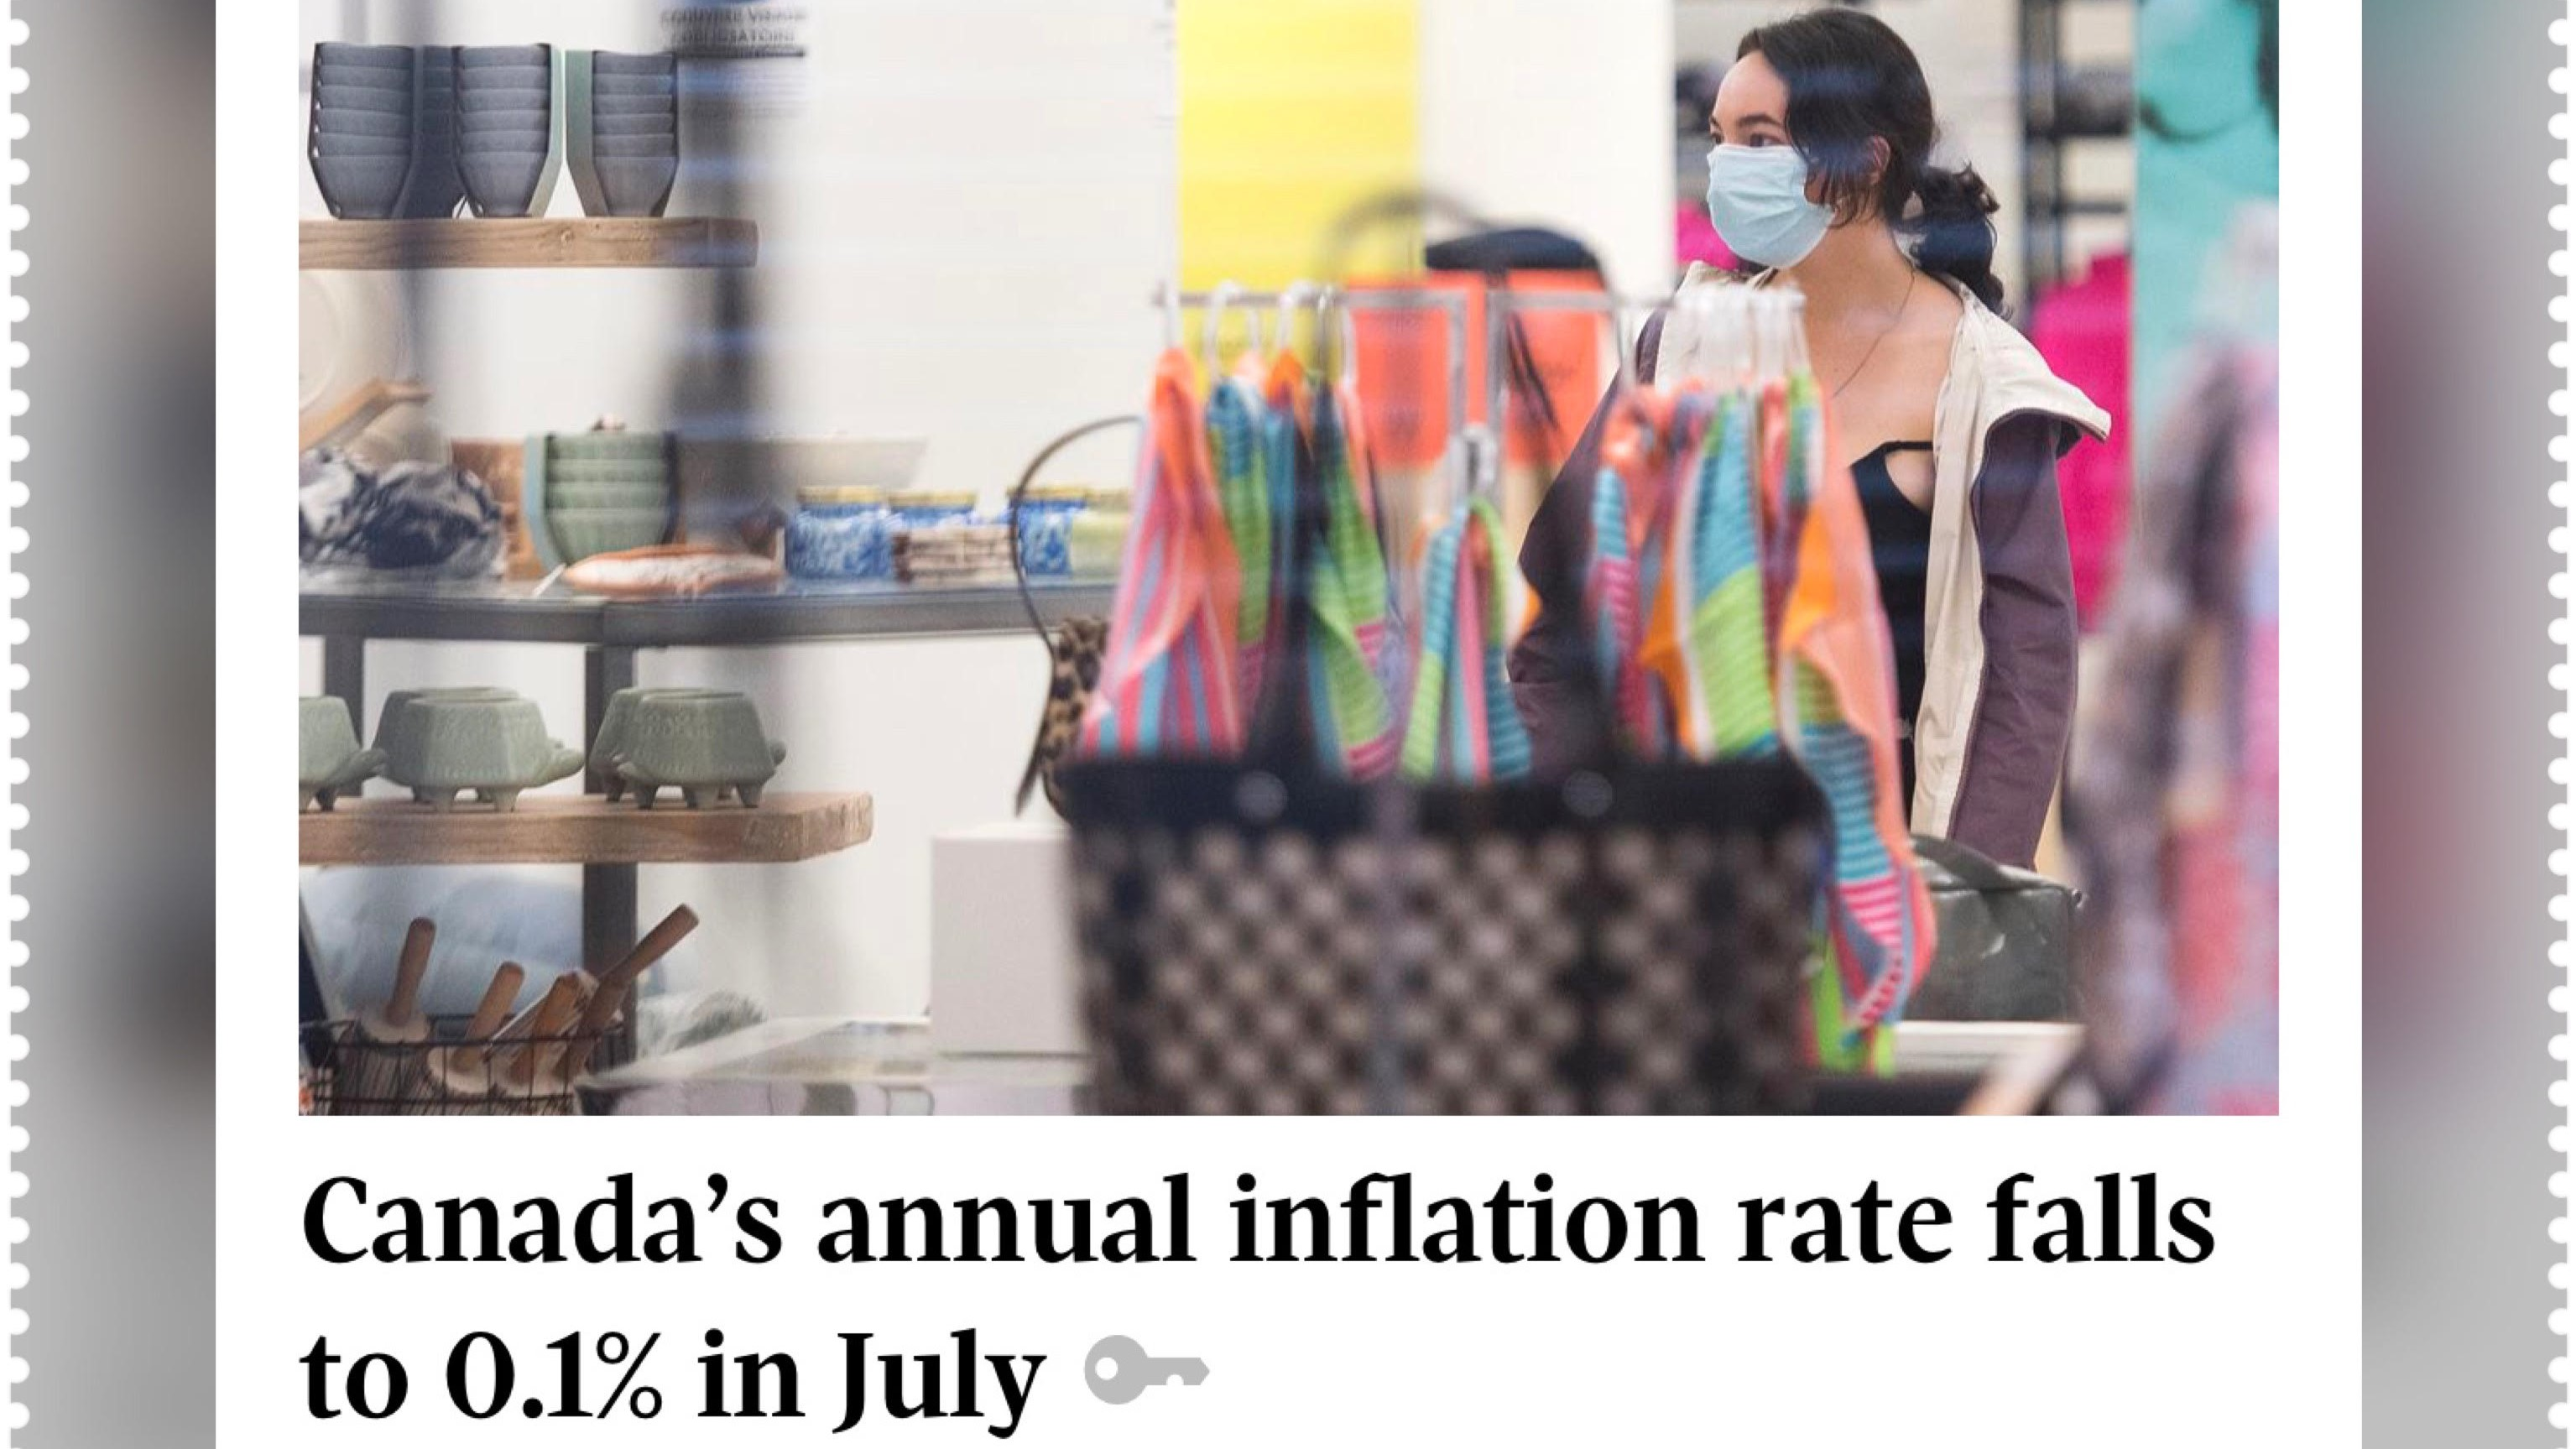 Canada's annual inflation rate falls to 0.1% in July